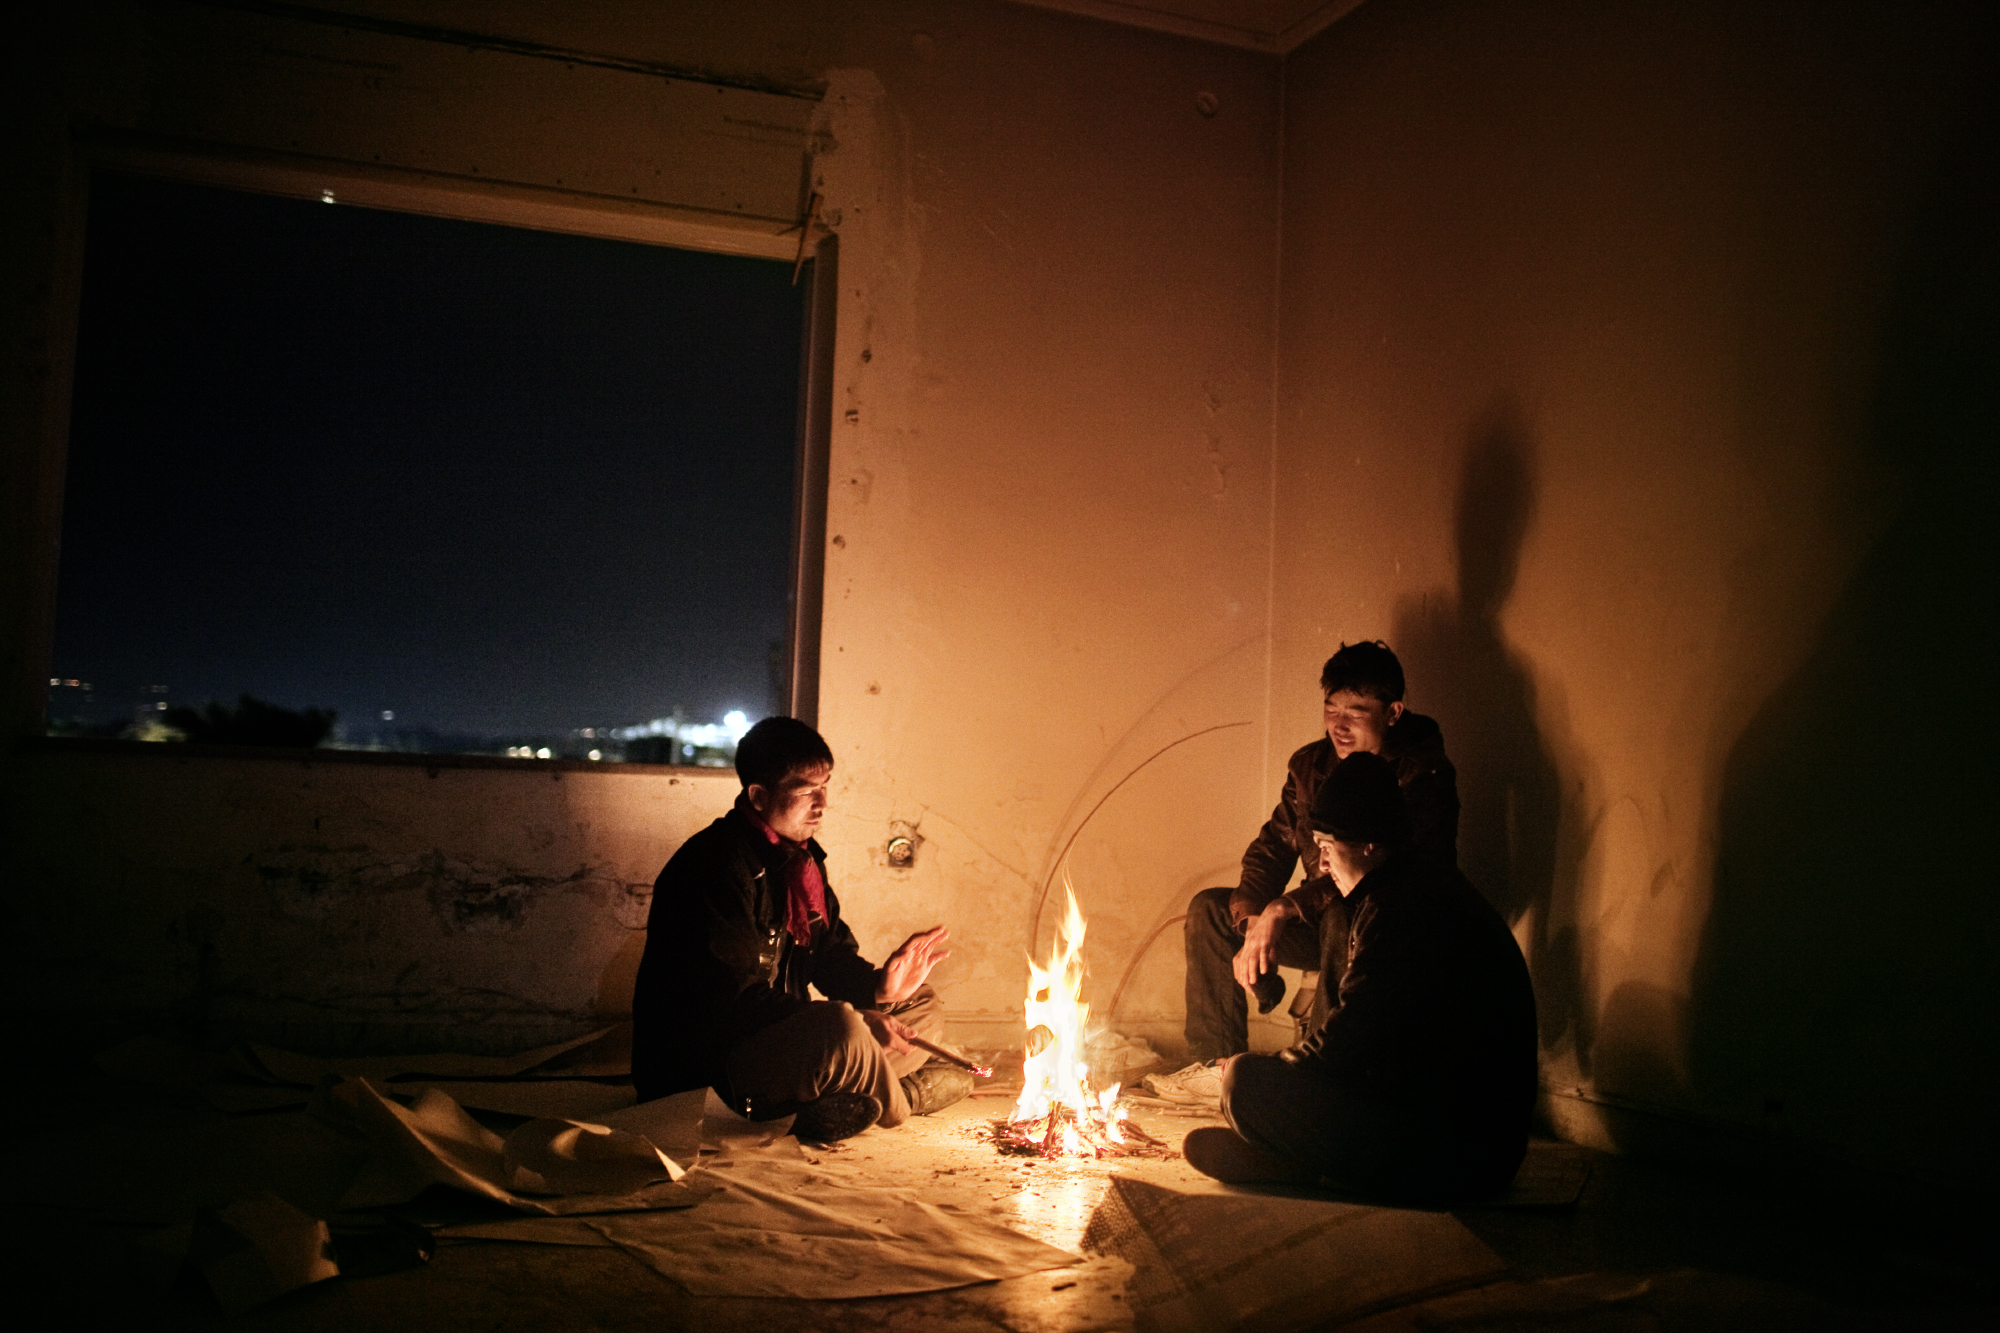 Three young Afghans spend the night in an abandoned building near the beach of Patras, Greece.